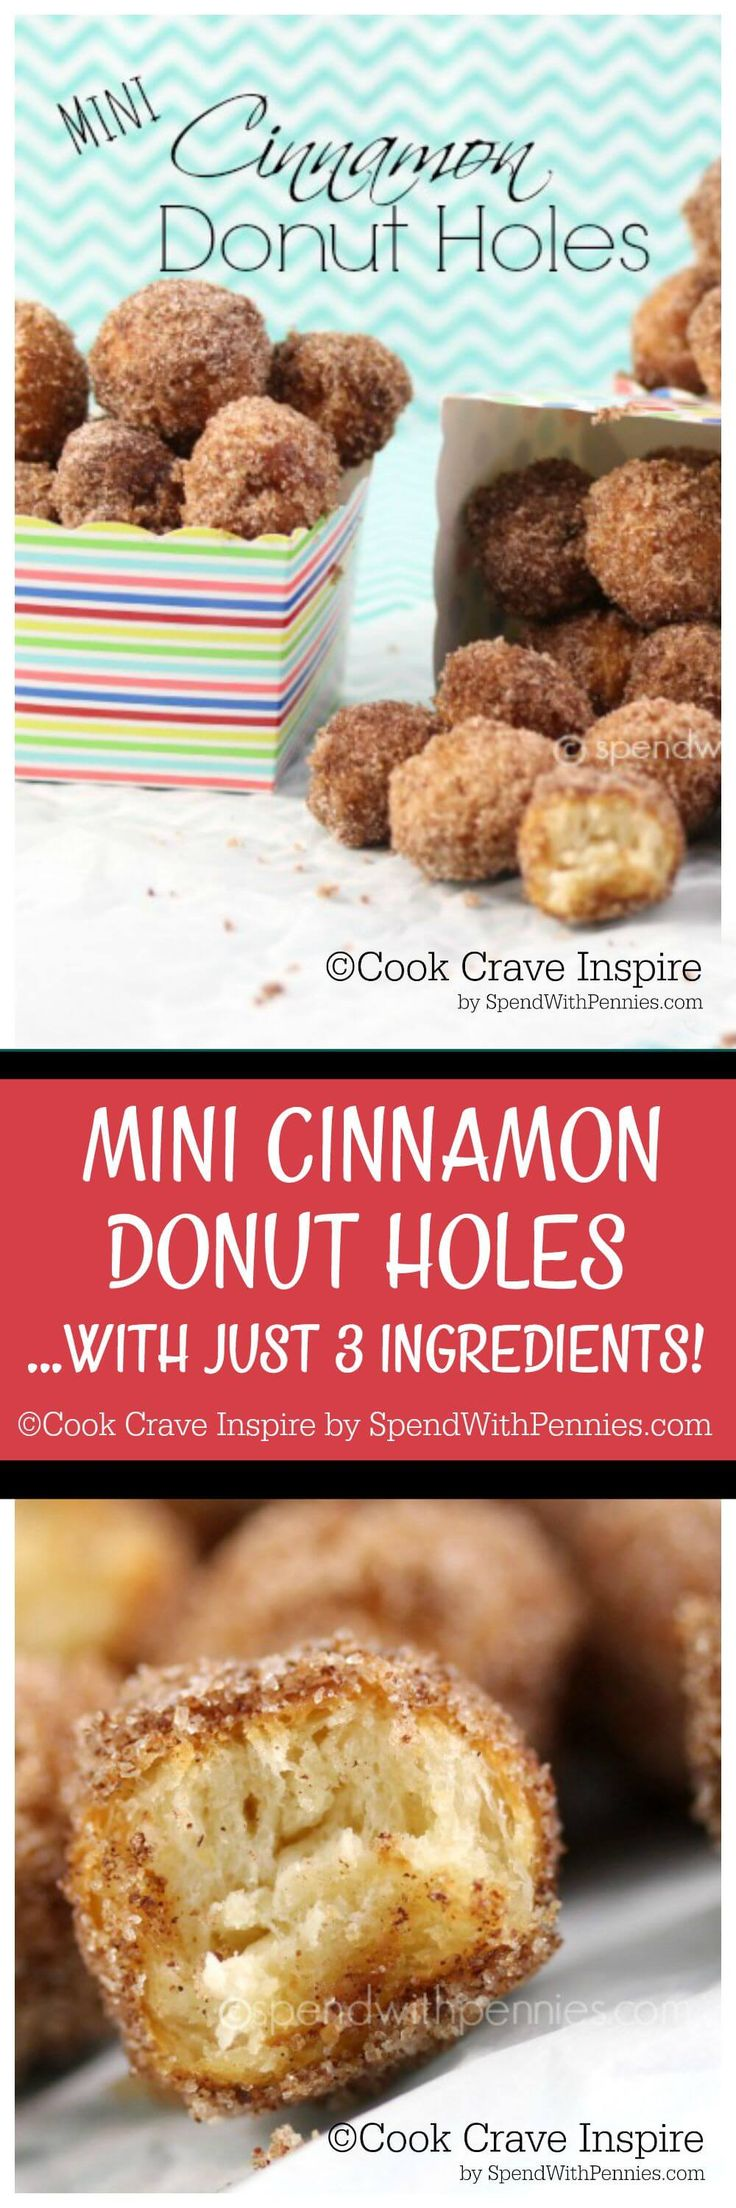 Mini Cinnamon Donut Holes! If you like cinnamon sugar mini donuts at the fair, you'll LOVE these! Easy & quick, little treats need just 3 ingredients!